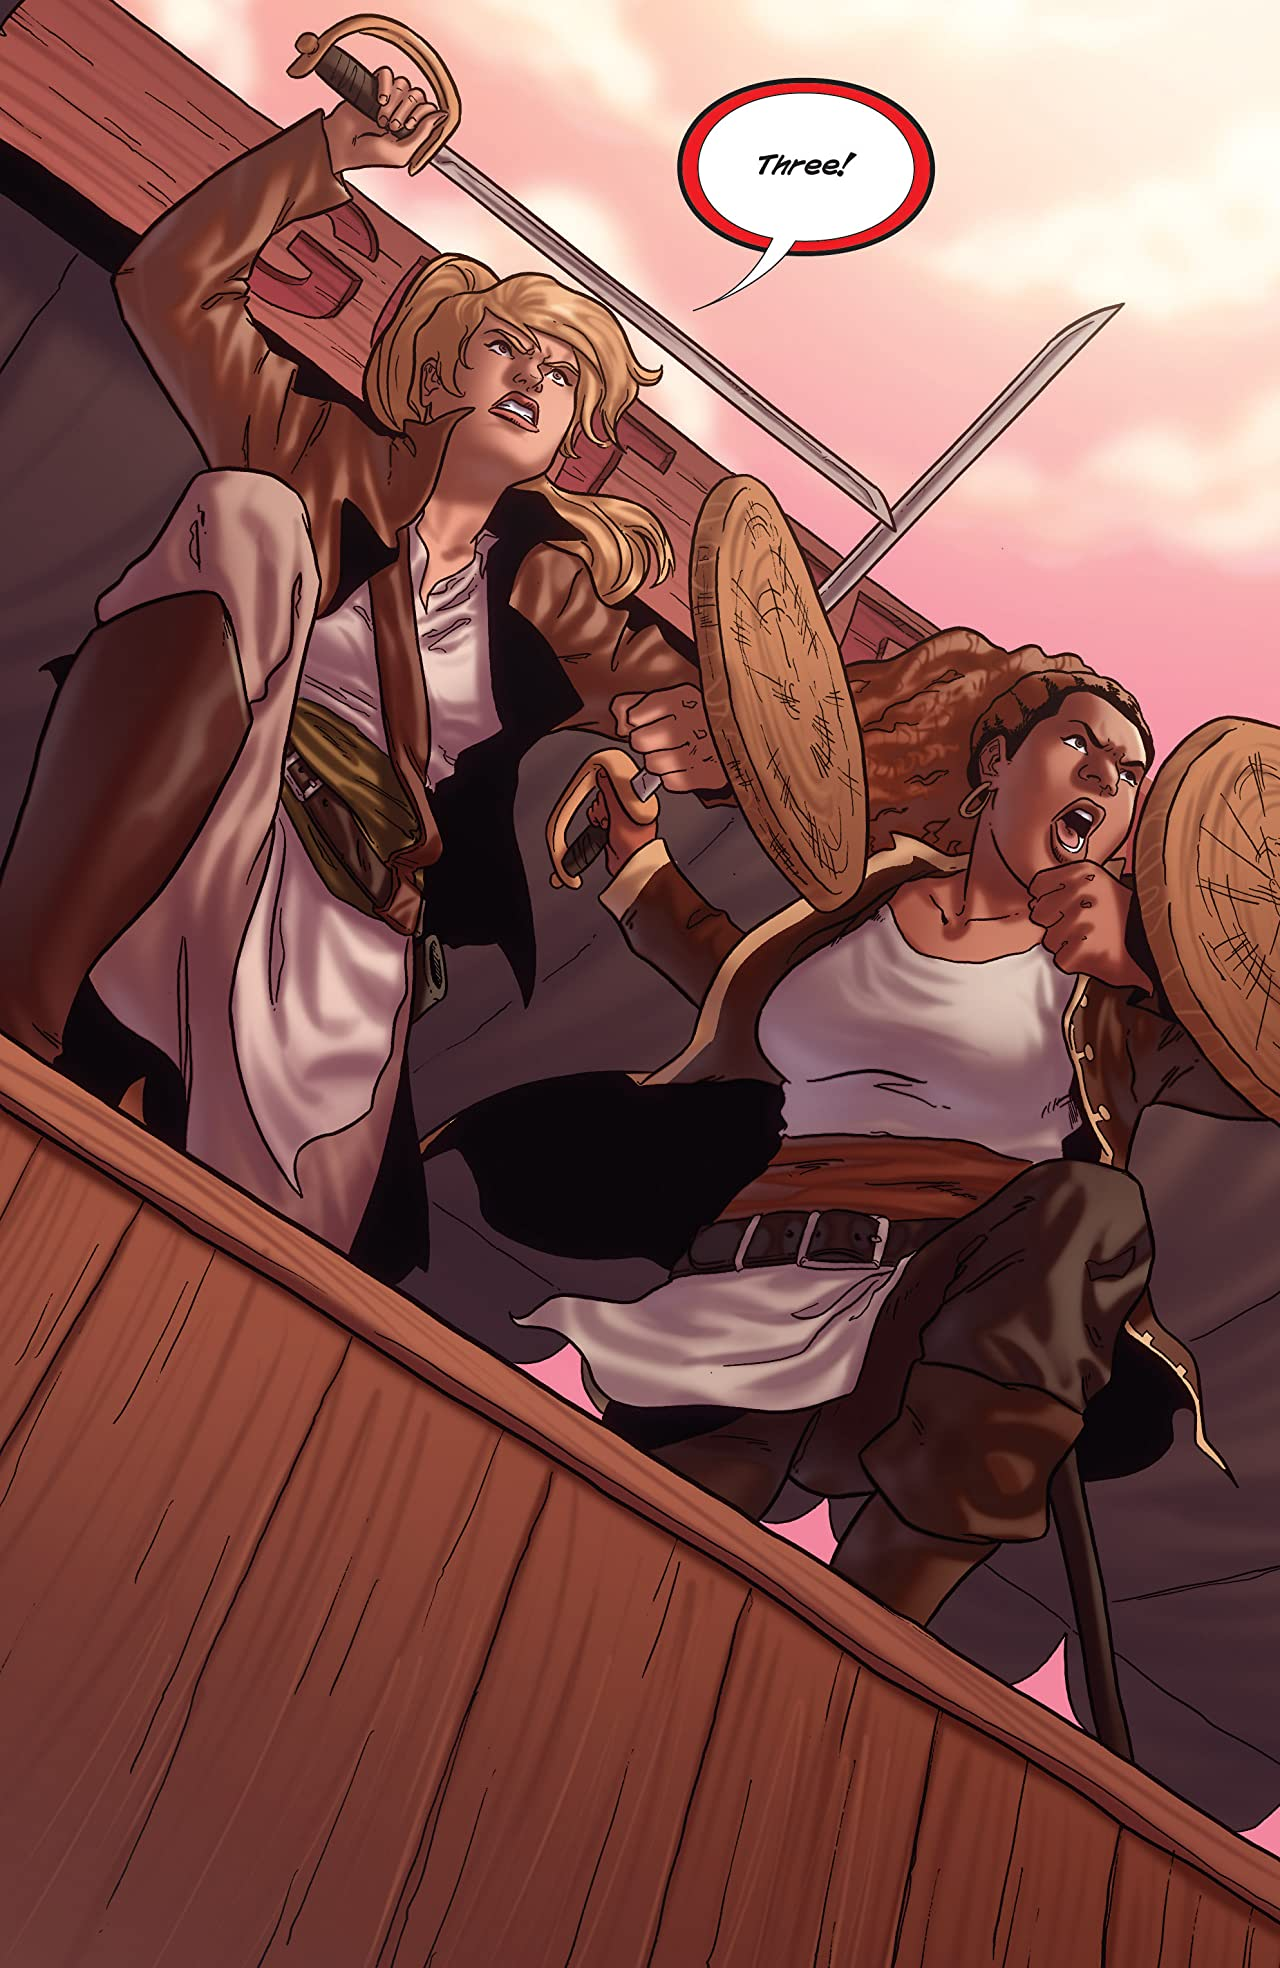 Princeless- Raven: The Pirate Princess #7